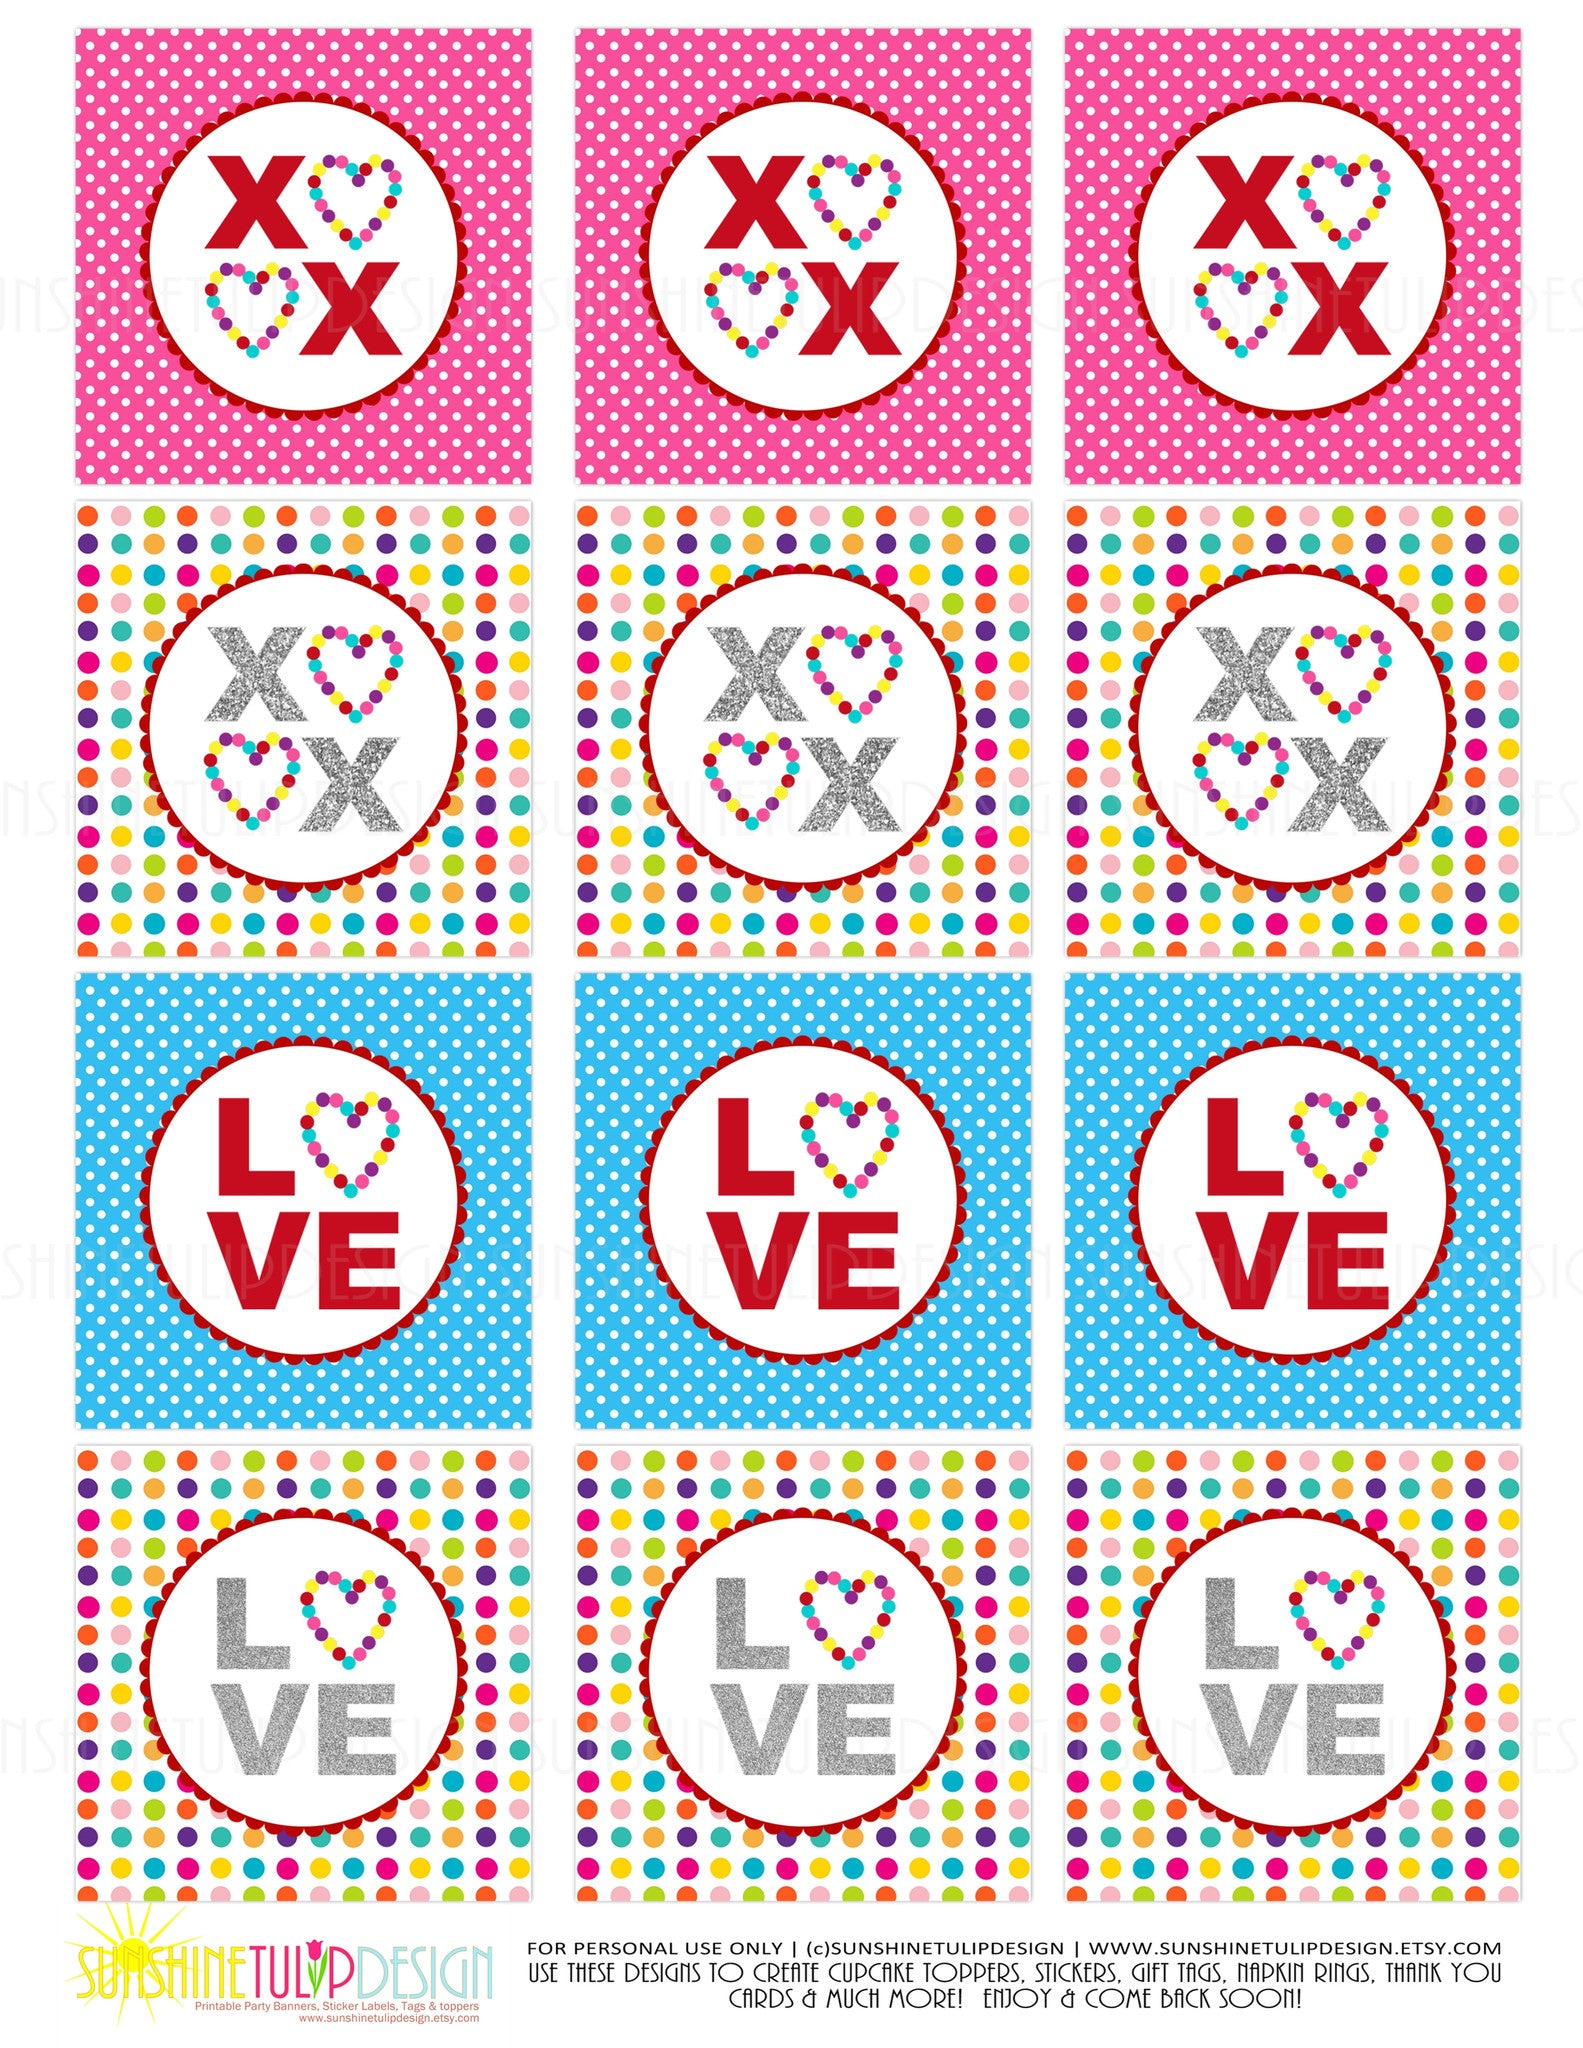 graphic regarding Printable Valentine Tags known as Printable Valentines Working day XOXO Present Tags Cupcake Toppers, Printable Get pleasure from Reward Tags Cupcake Toppers by means of SUNSHINETULIPDESIGN